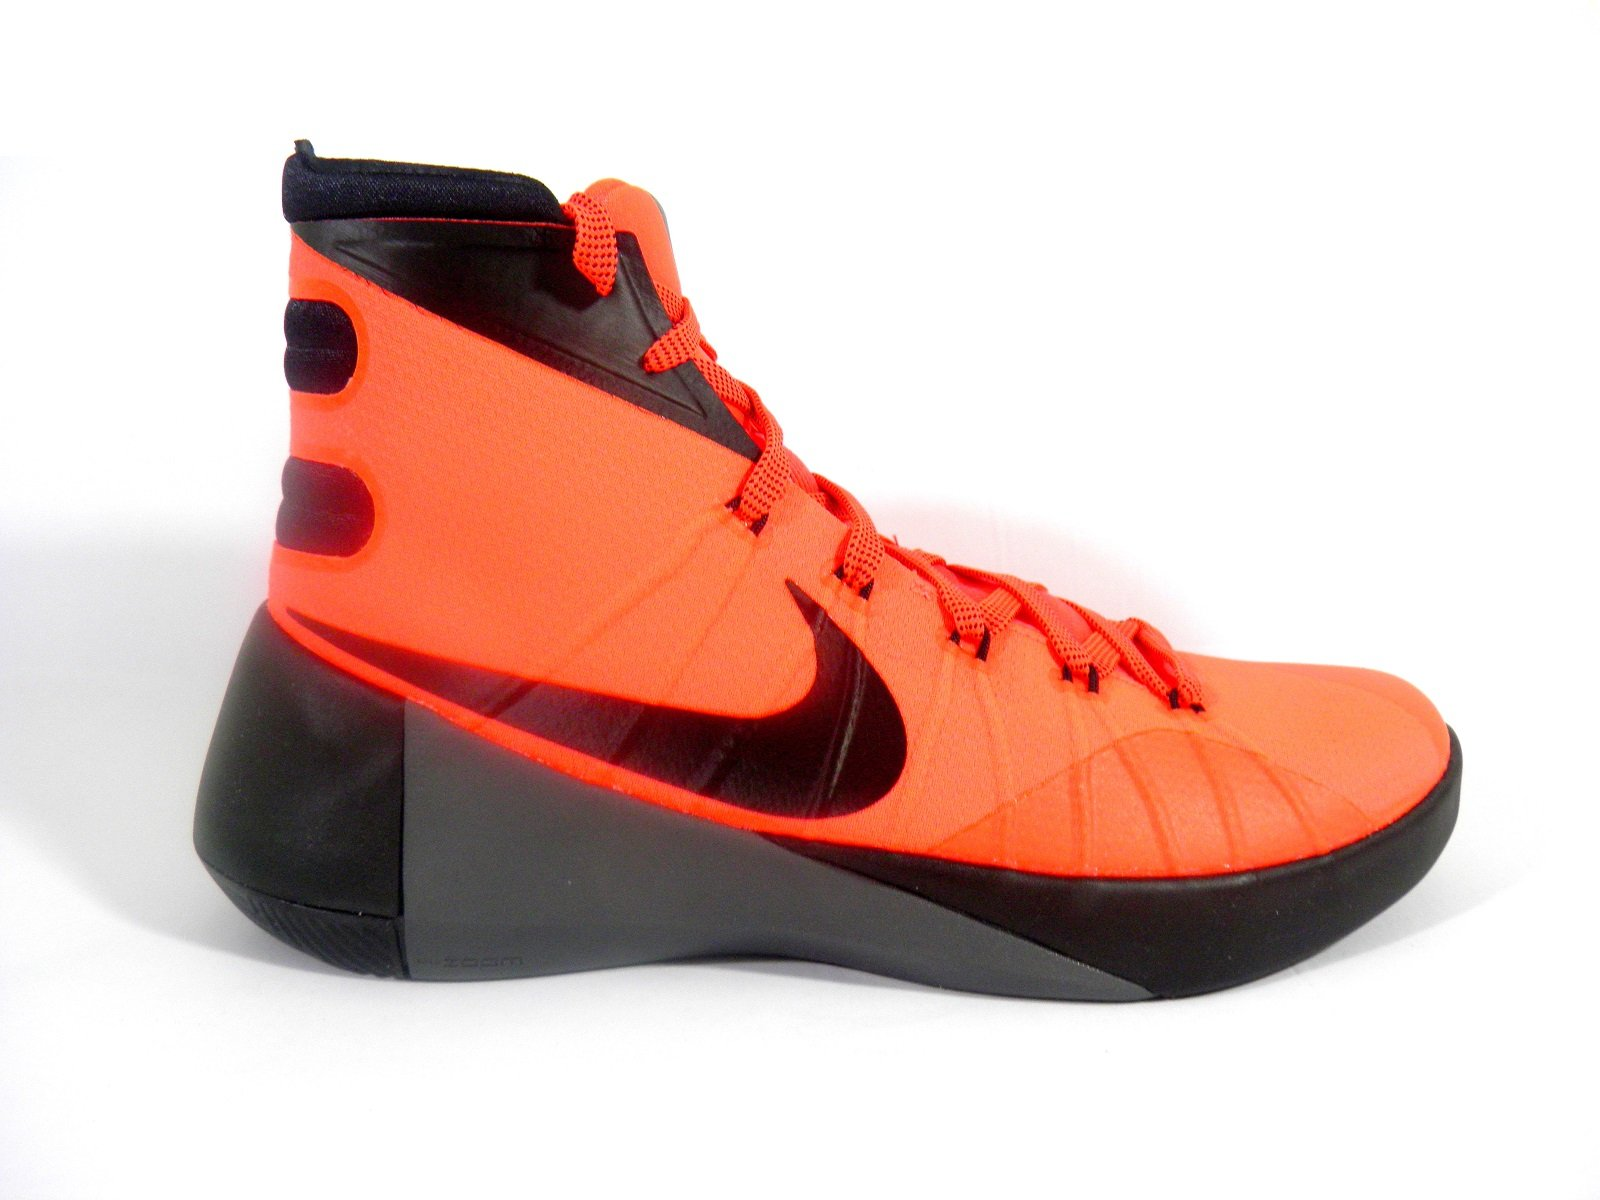 Orange Nike Youth Basketball Shoes